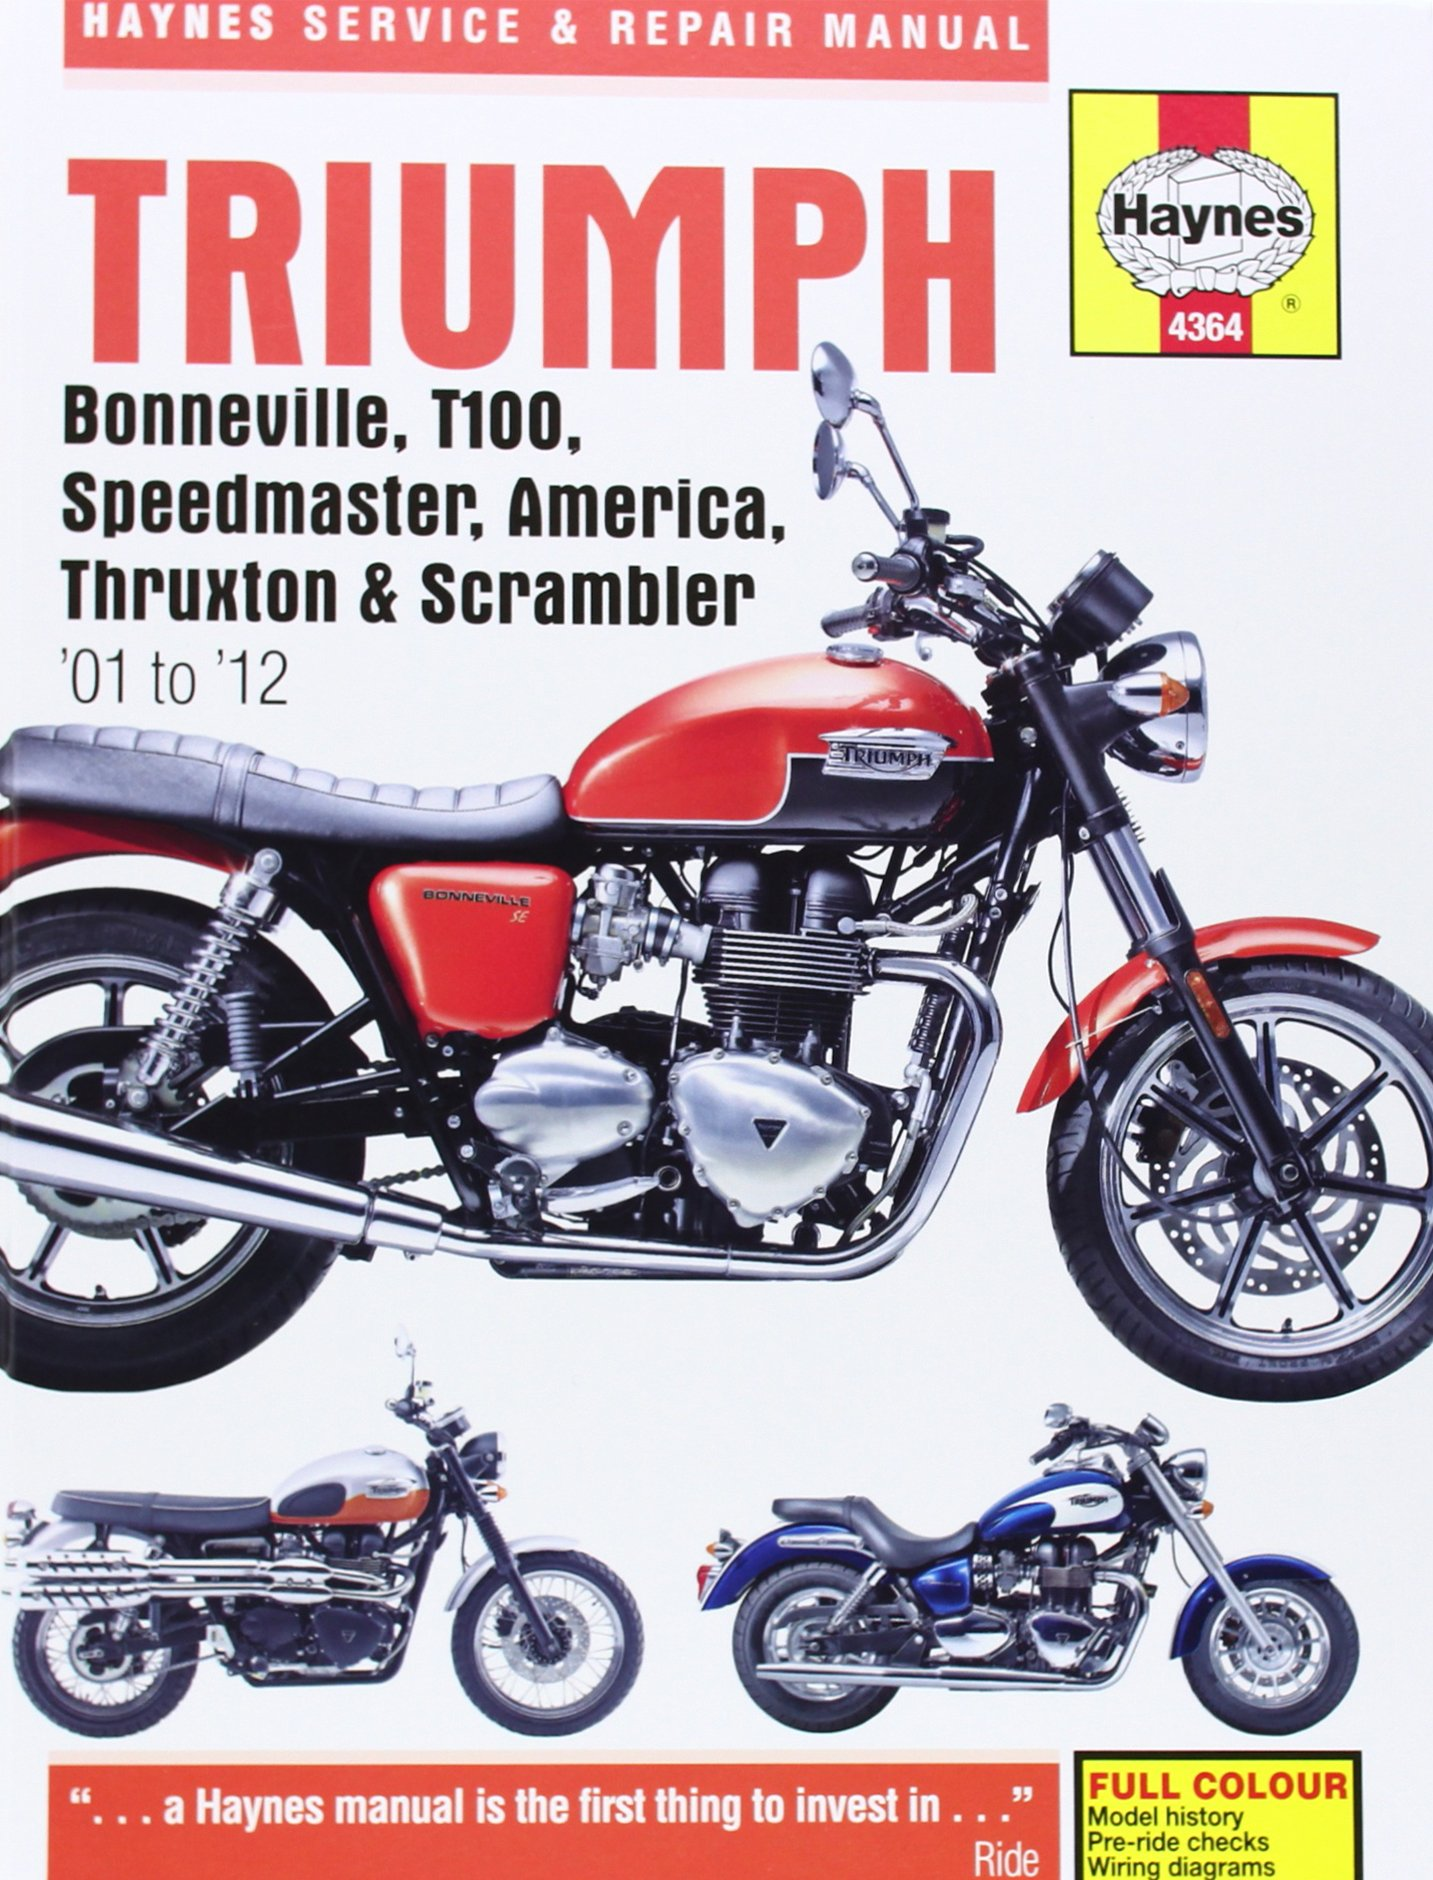 Triumph Bonneville, T100, Speedmaster, America Service and Repair Manual:  2001-2012 (Haynes Service and Repair Manuals): Amazon.co.uk: Matthew  Coombs, ...